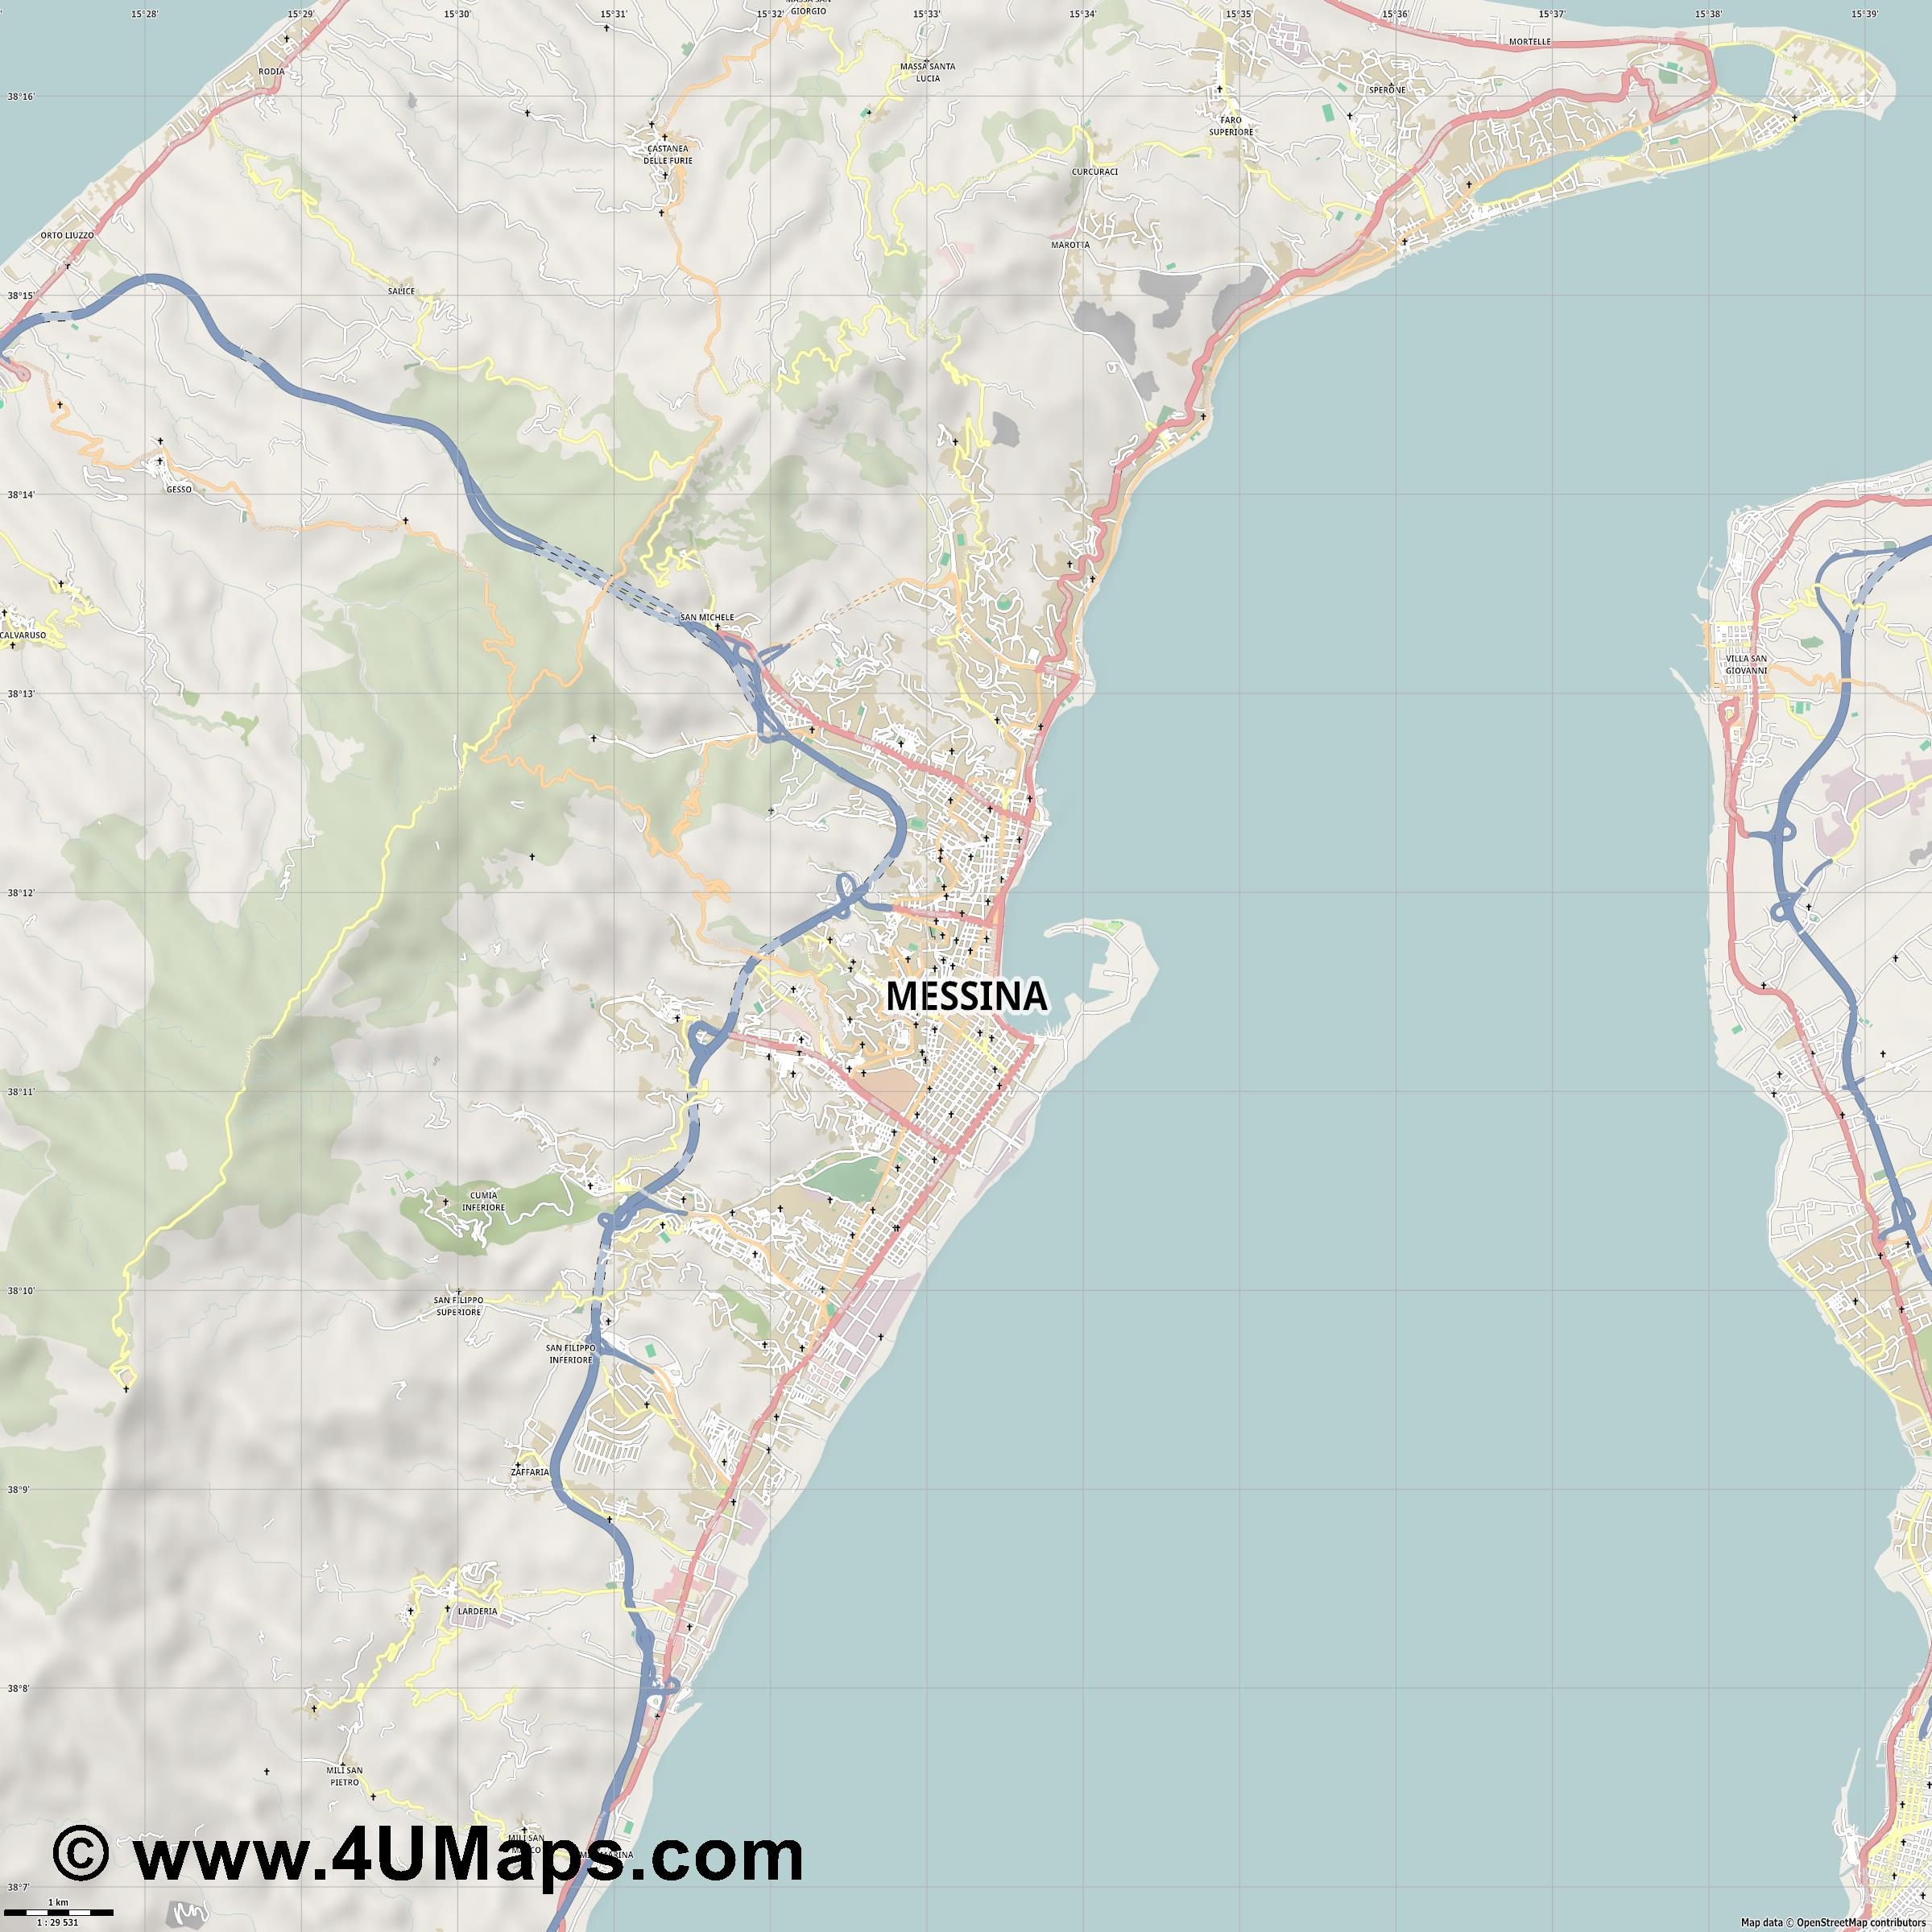 Messina Mesina Messine  jpg high detail, large area preview vector city map